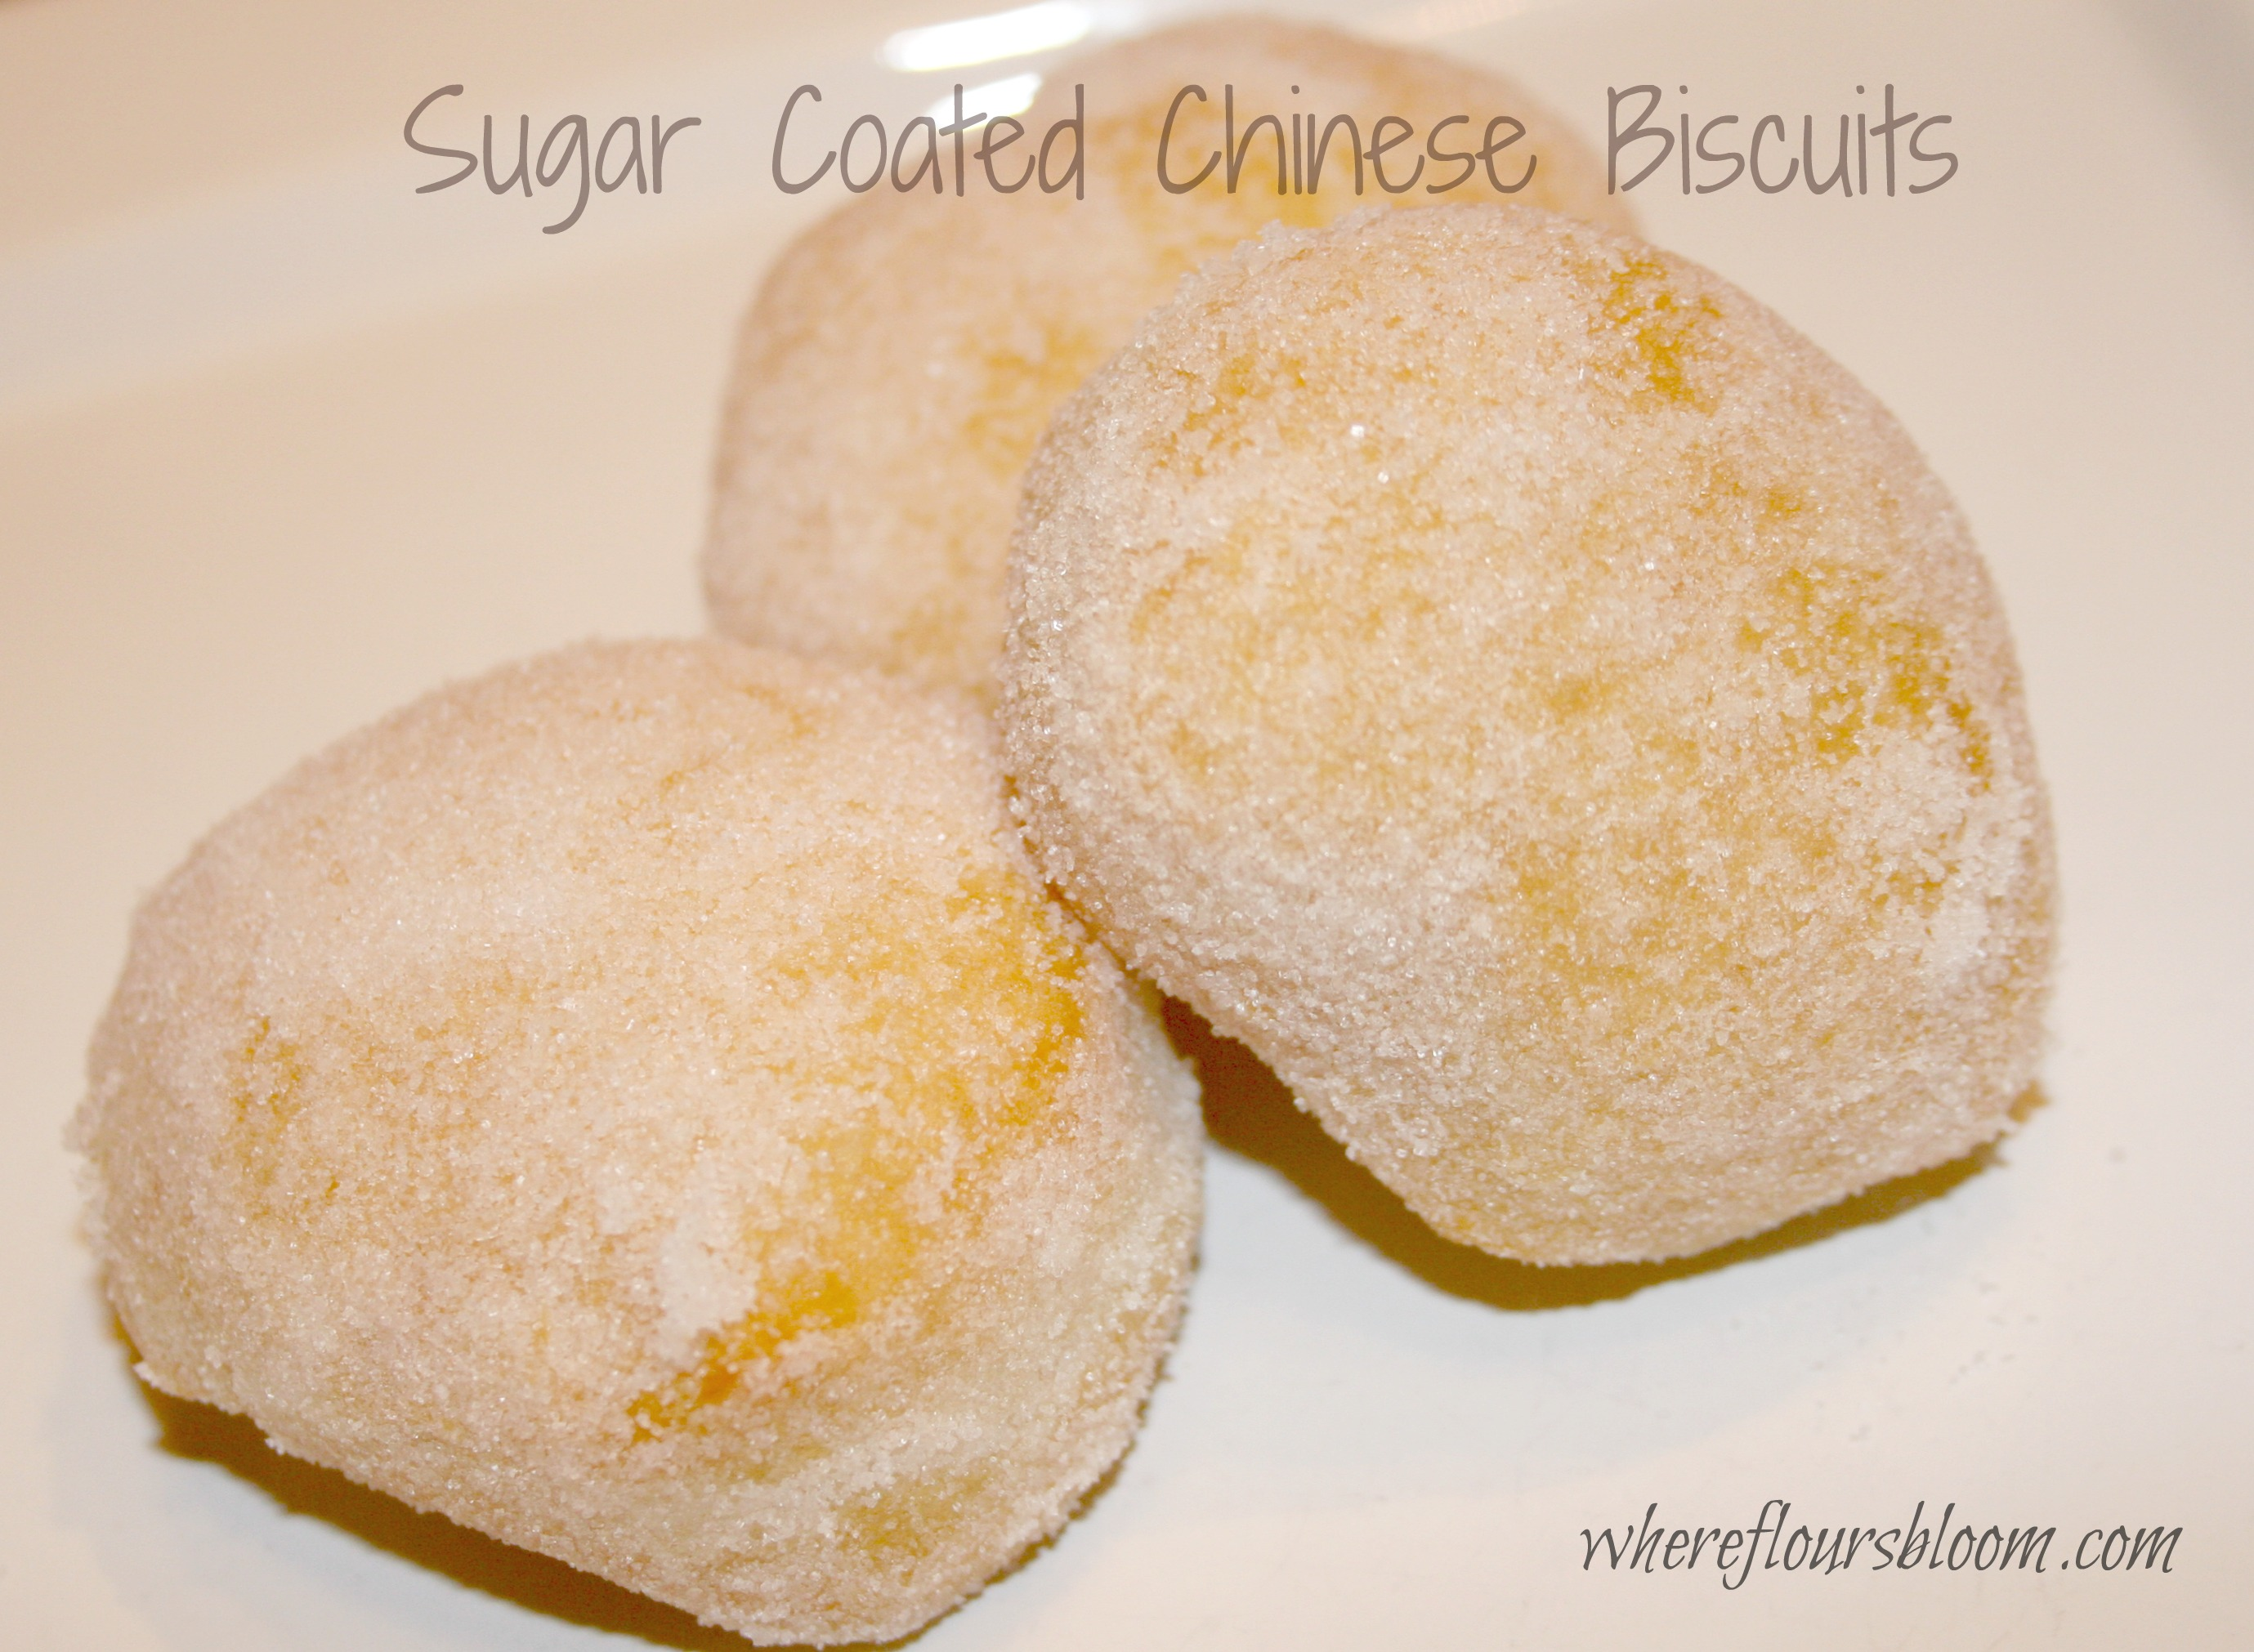 Sugar Chinese Biscuits , Sugar Coated Chinese Biscuits